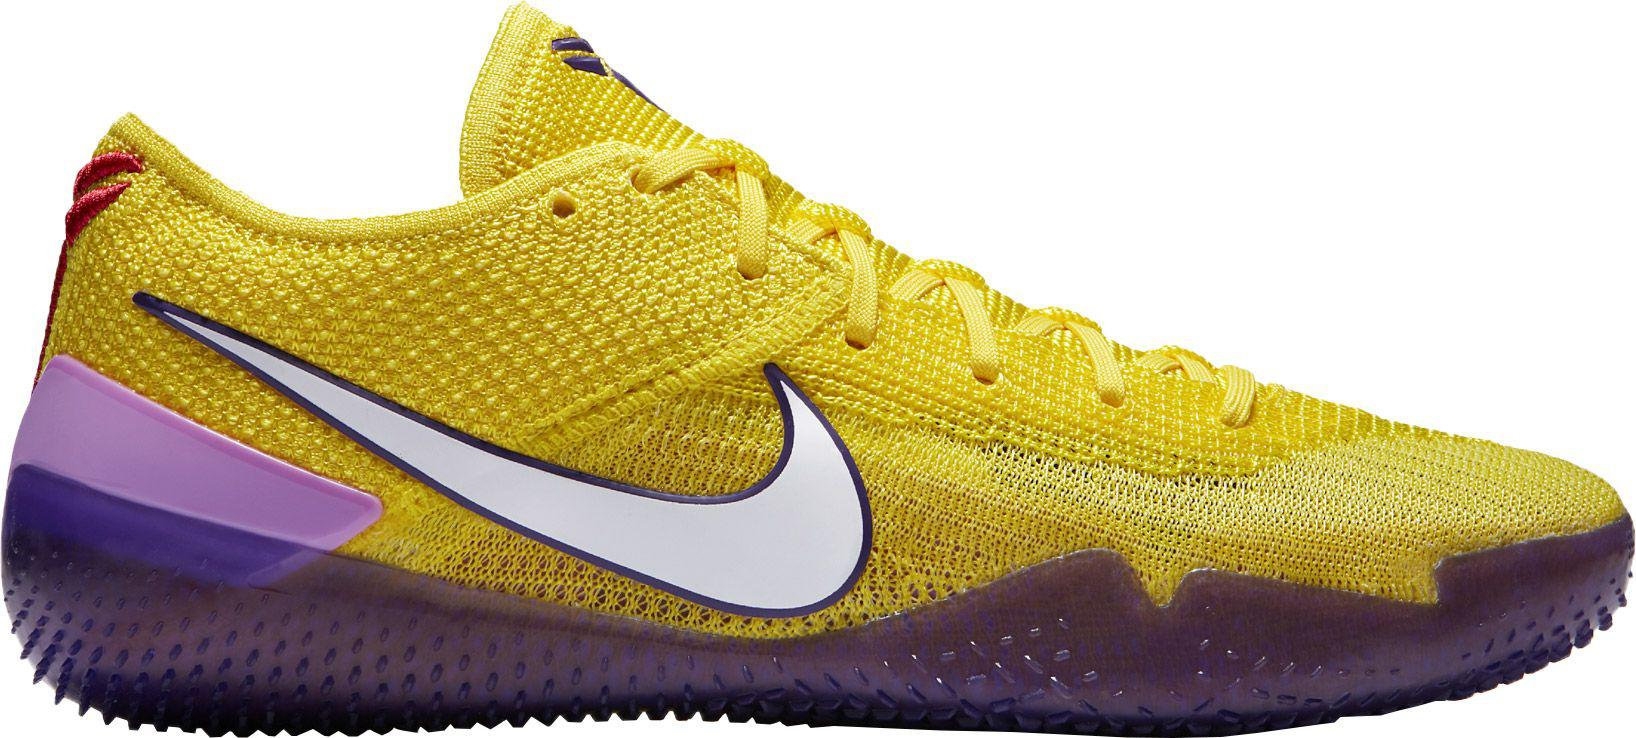 05dfa4068c98 Lyst - Nike Kobe A.d. Nxt 360 Basketball Shoes in Yellow for Men